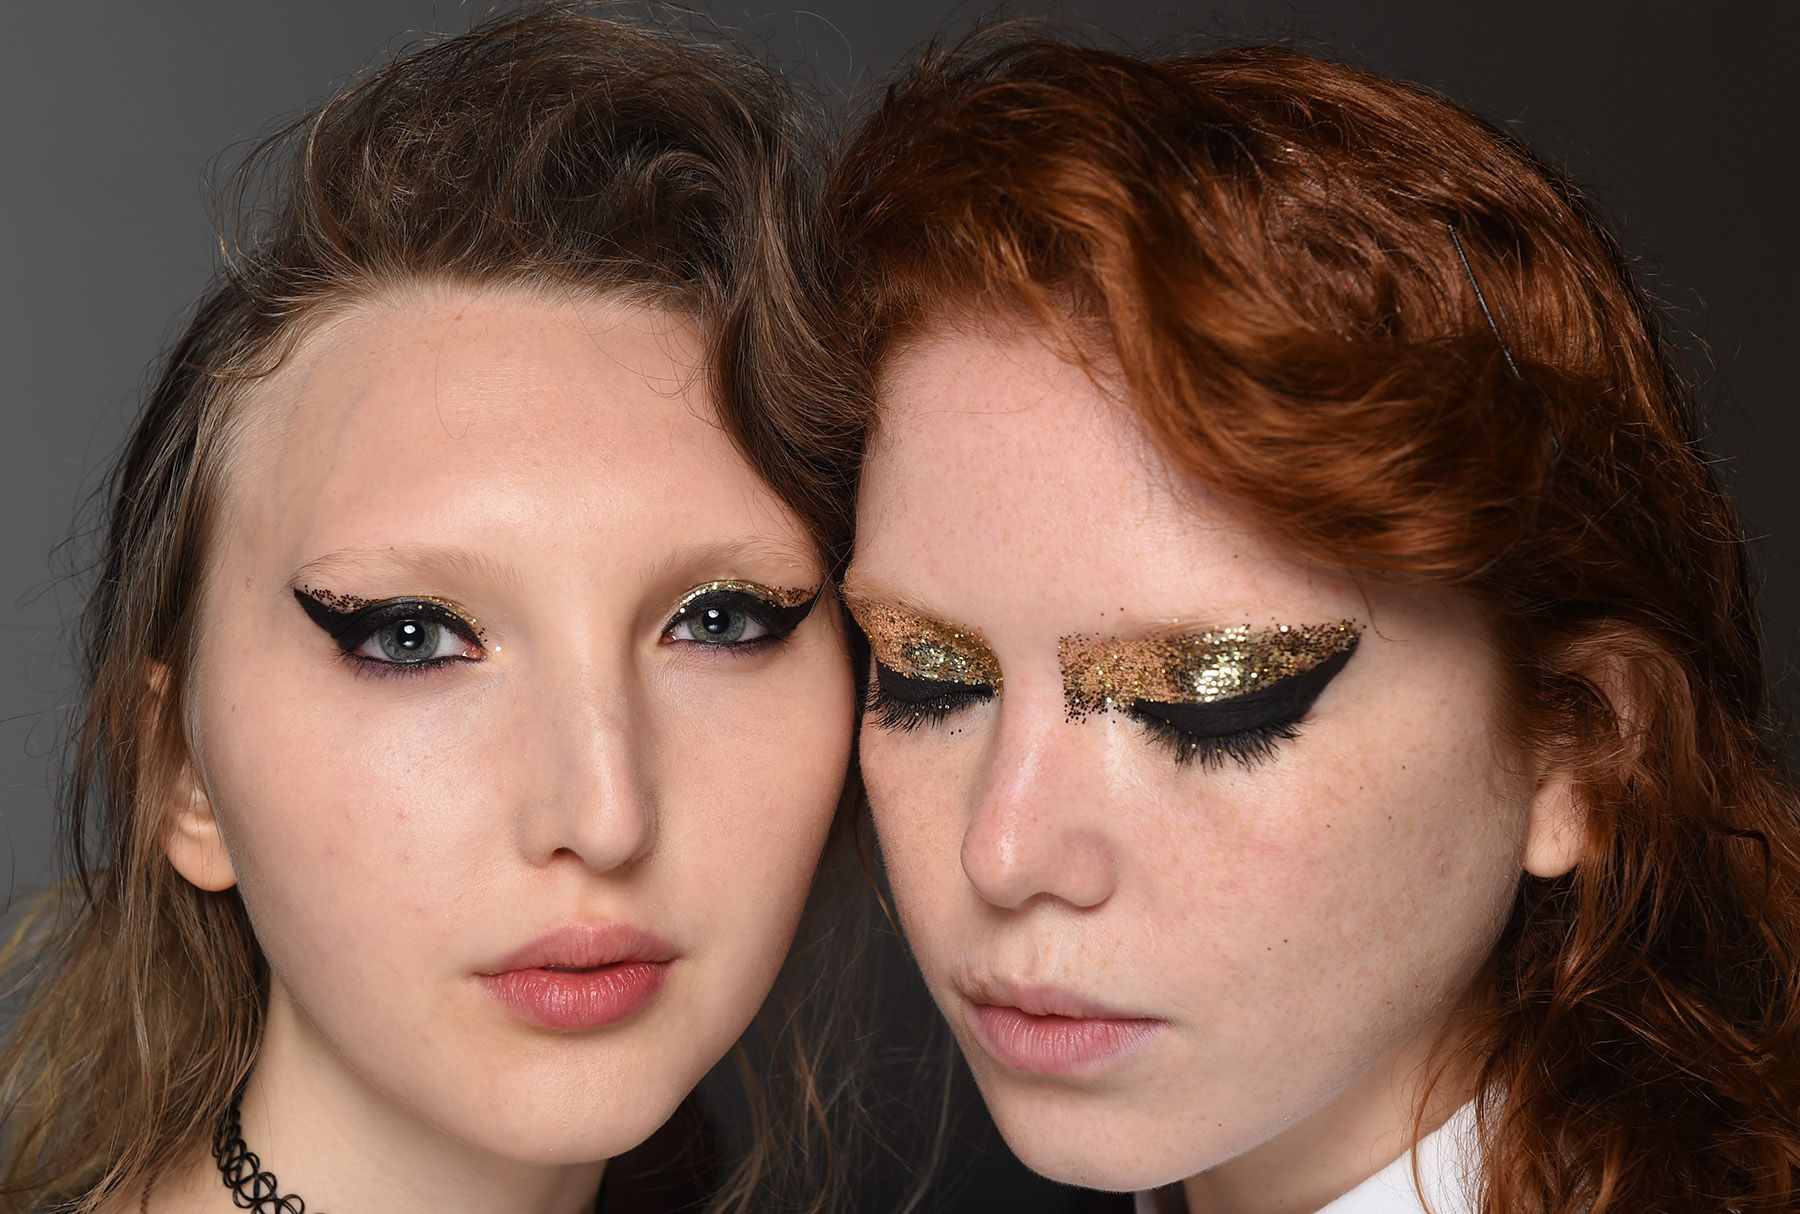 Summers Coolest Eye Makeup Trend Looks Great on Everyone